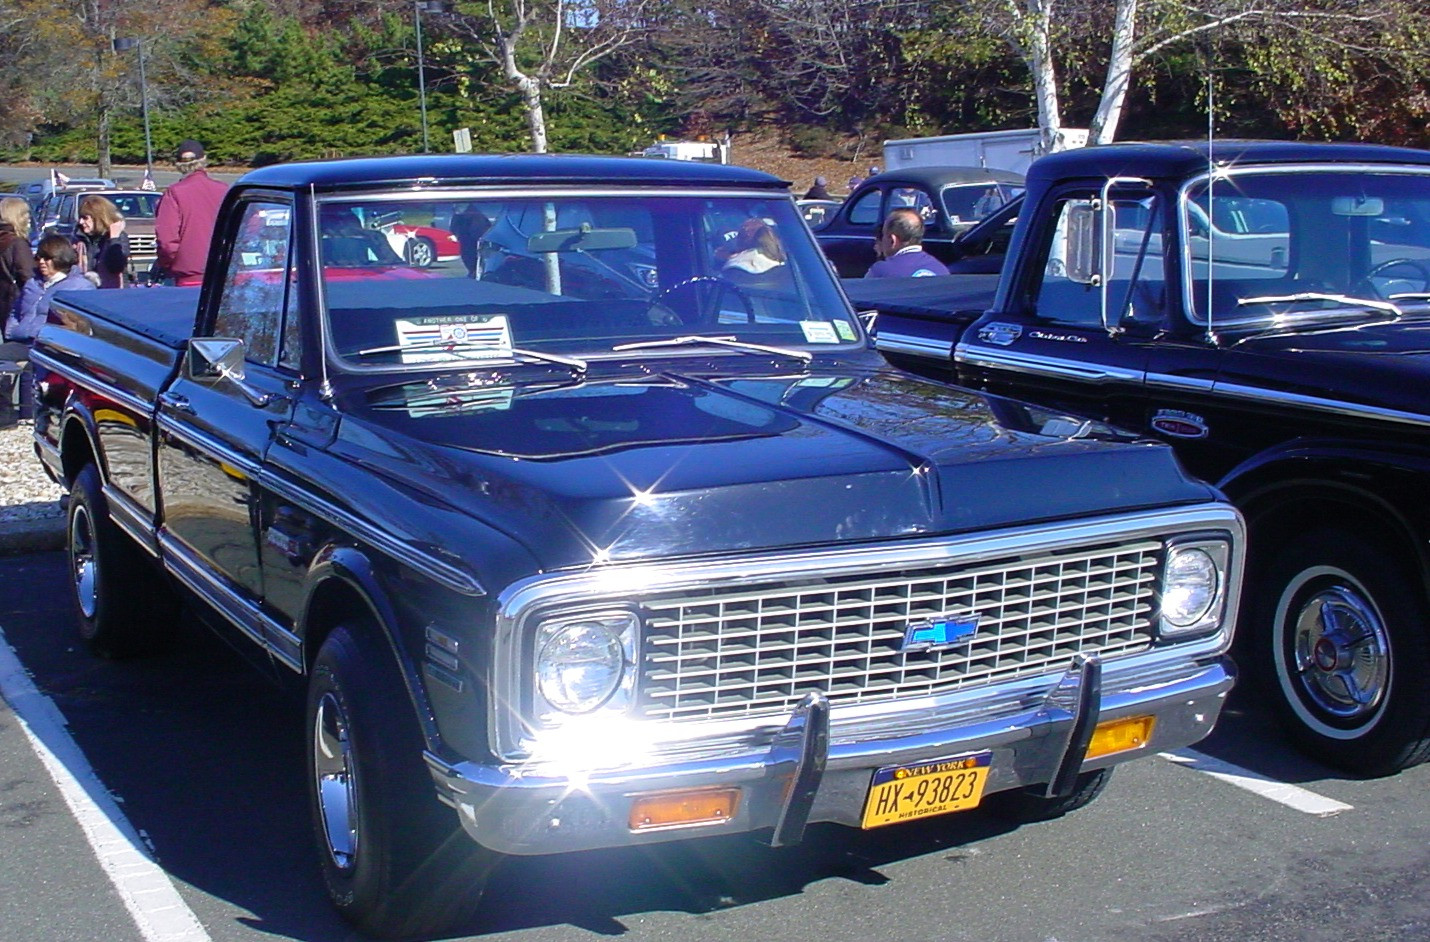 Glen Gray's 1972 Chevrolet pickup & Brent Robedee's 1965 Ford pickup